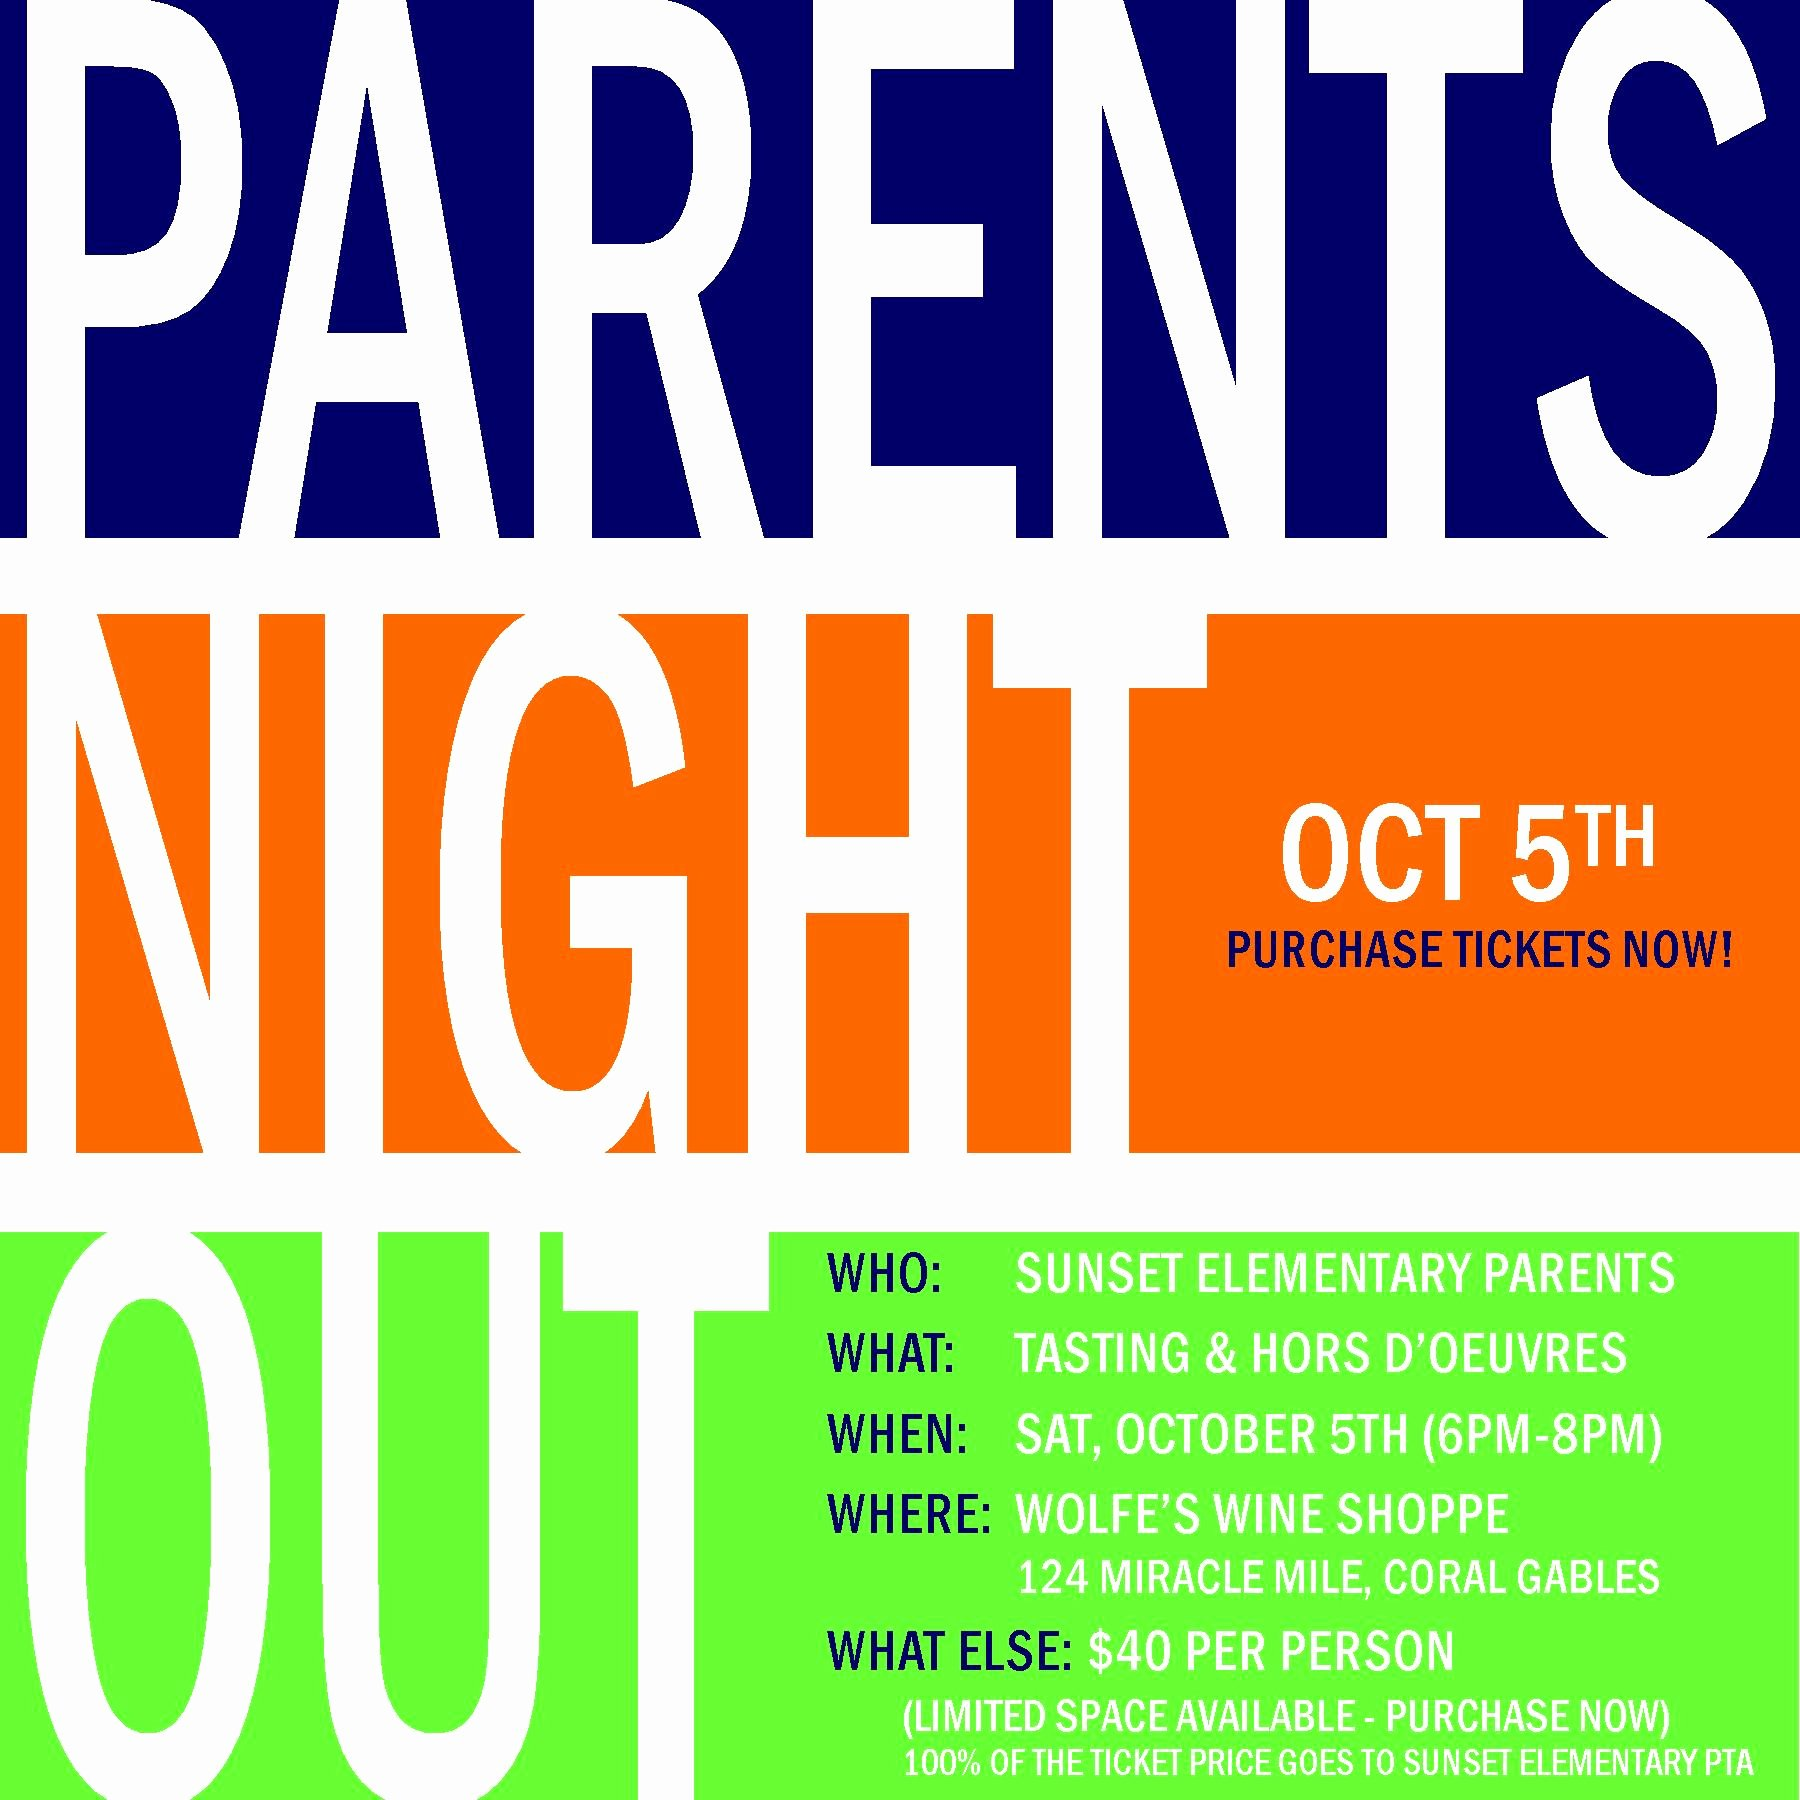 Parents Night Out Clipart